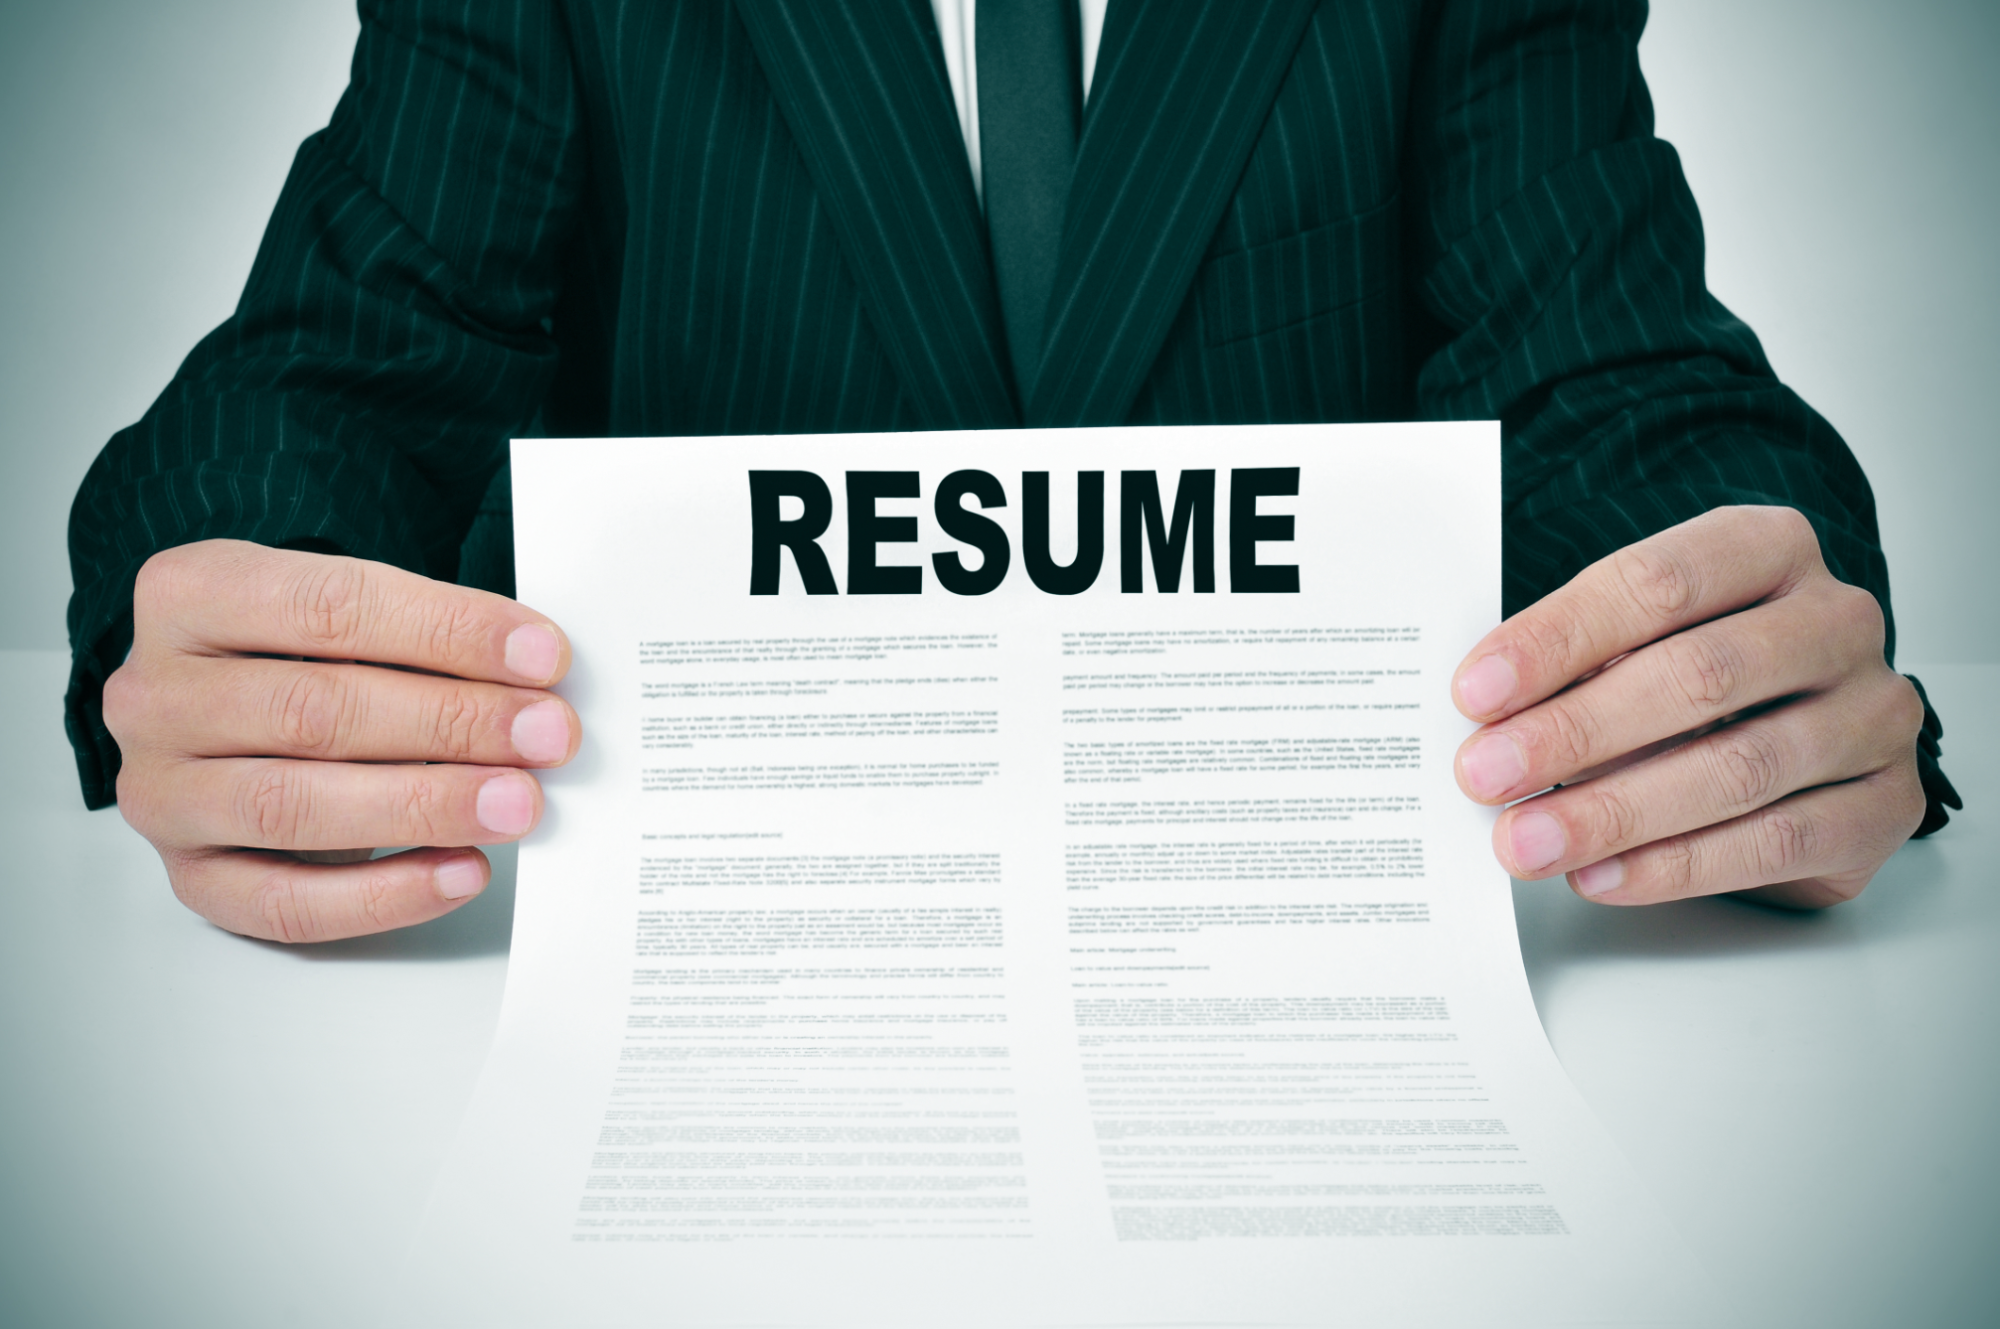 17 Resume Improvement Tips for 2017